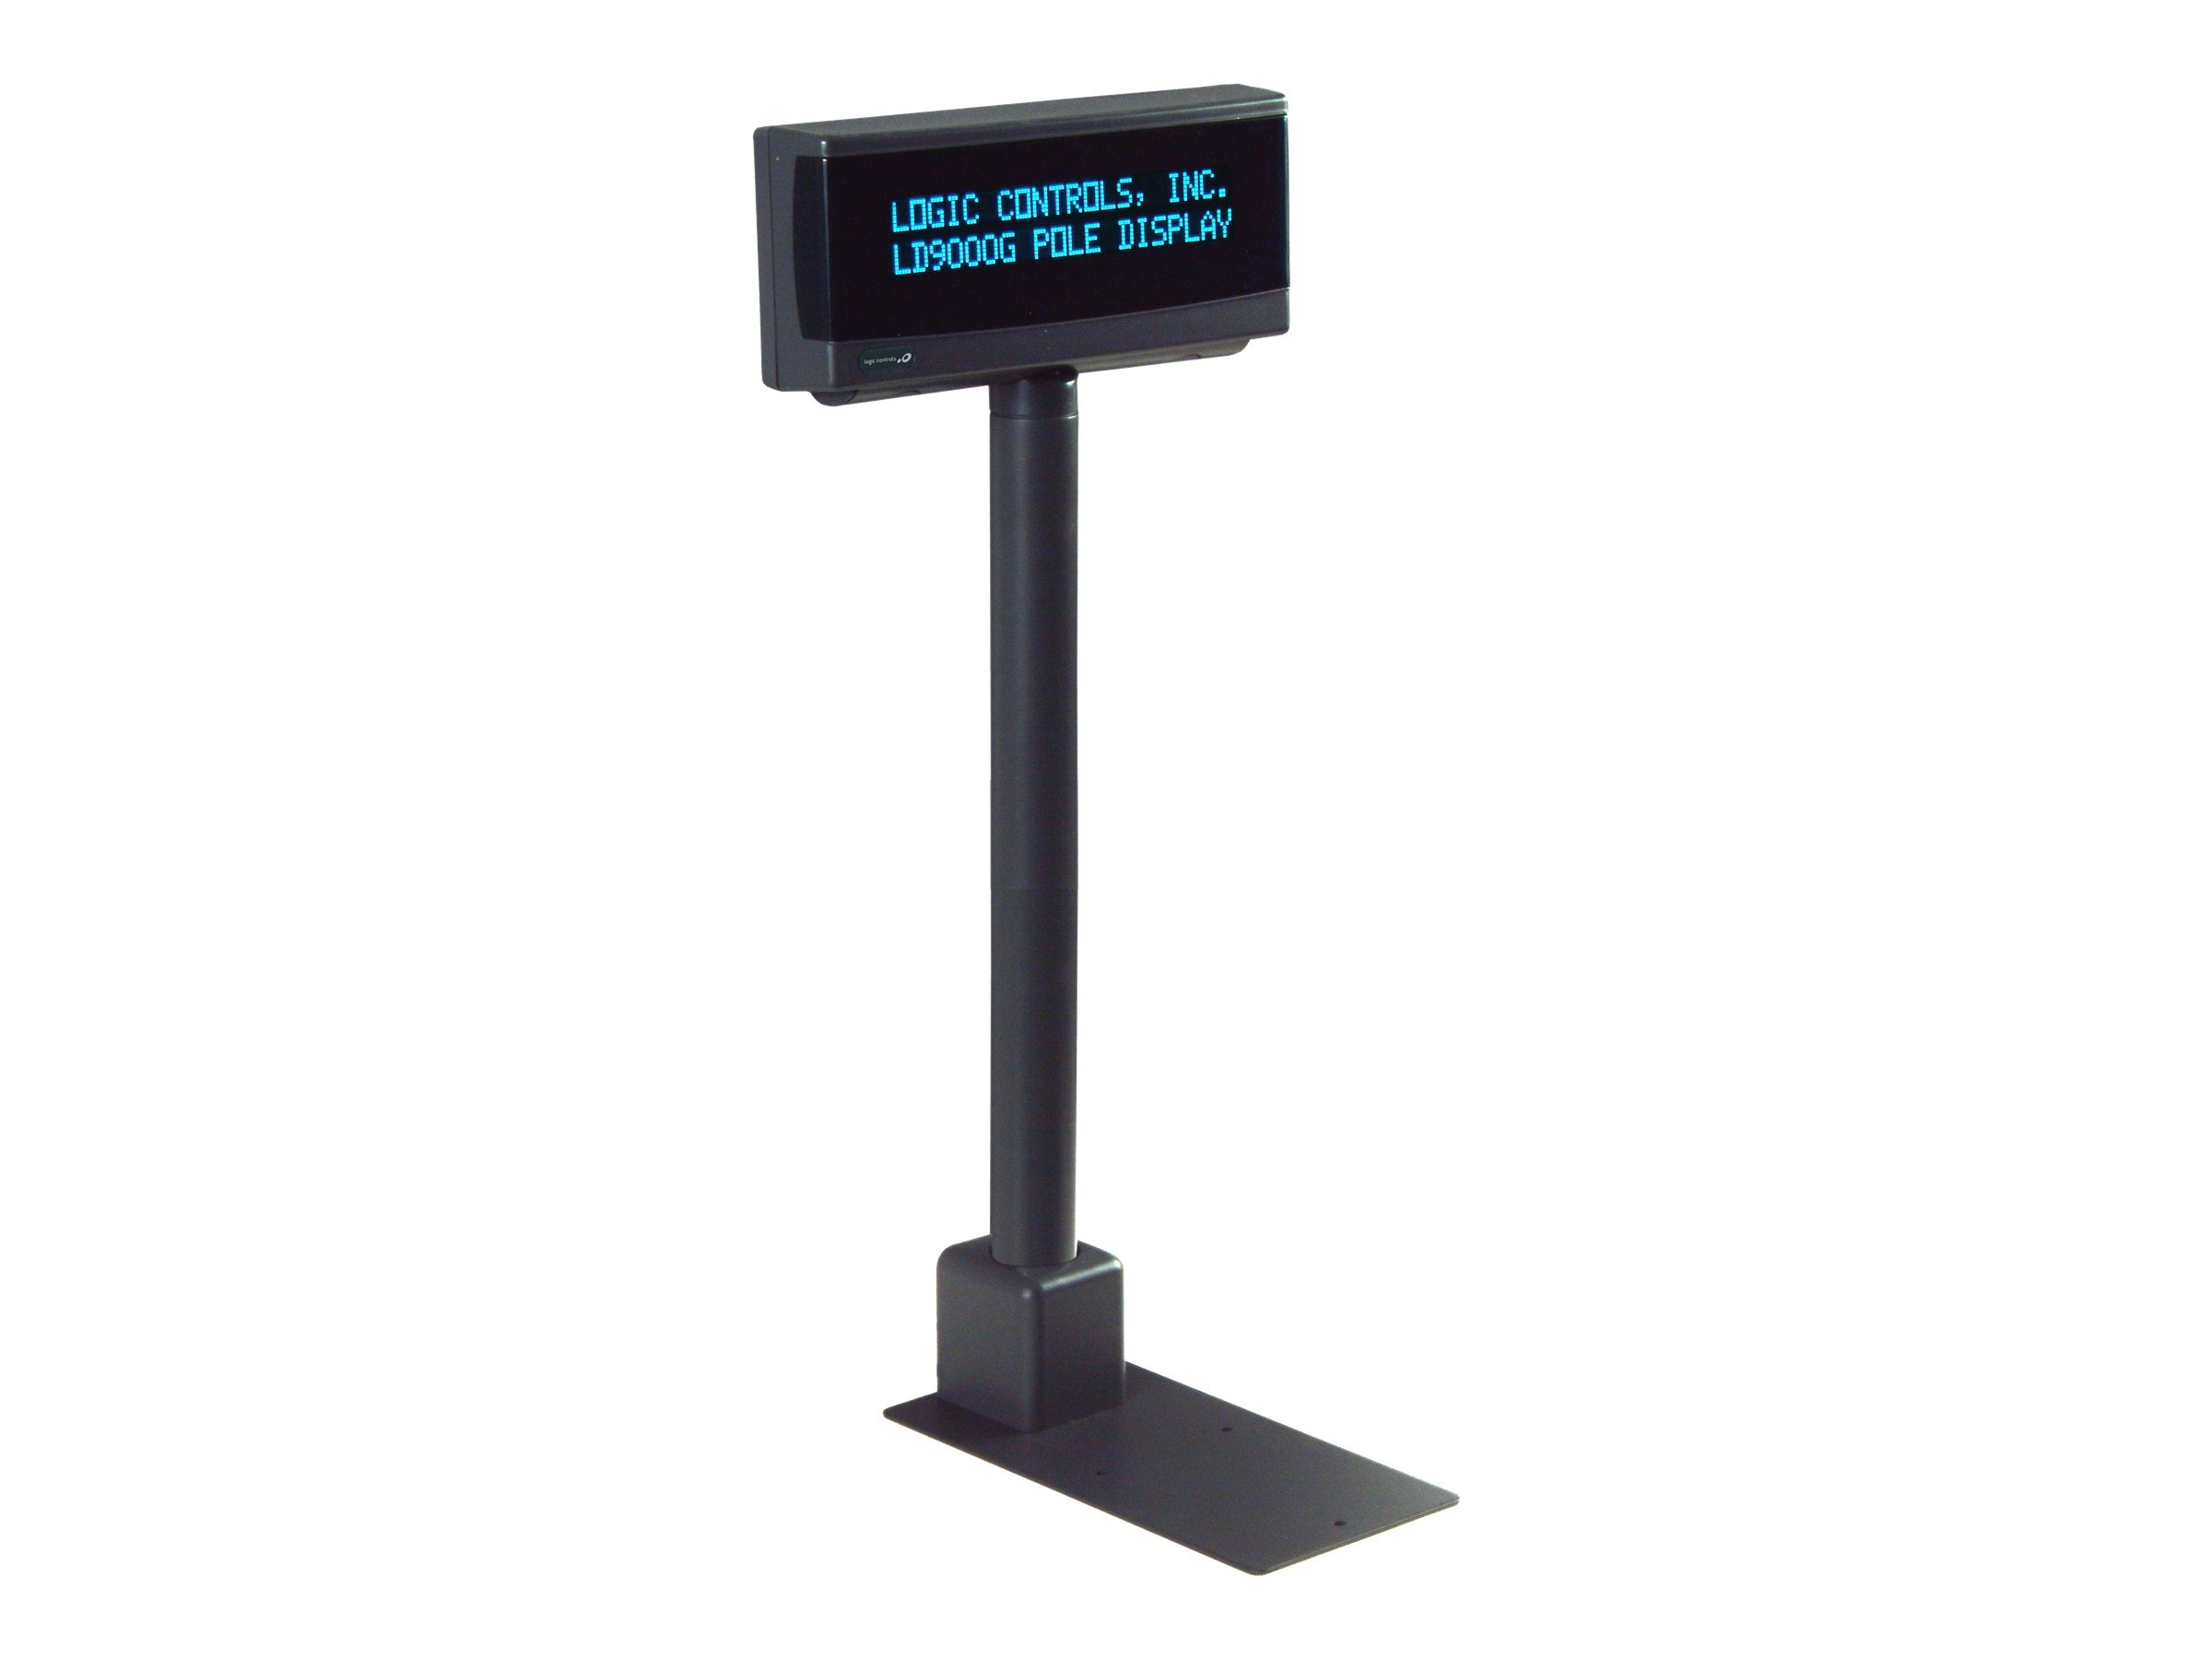 Logic Controls Pole Display, 9.5mm, 2 x 20, RS-232 Universal, External Power Supply, Gray, LDX9000-GY, 16966731, POS Pole Displays